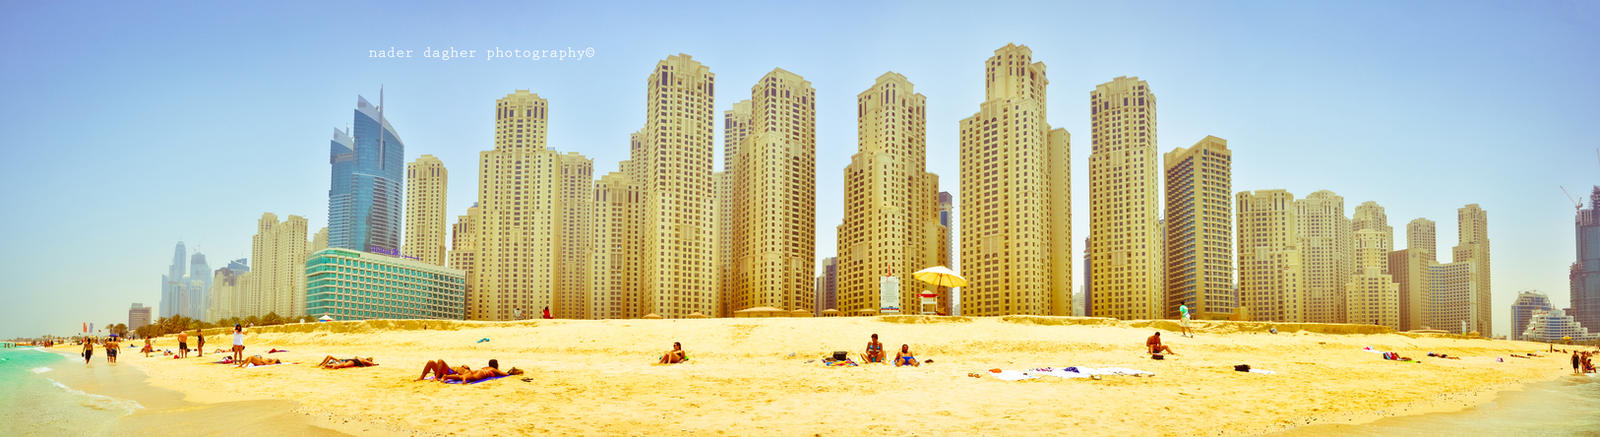 D Art Exhibition Jbr : Summer in dubai jbr panorama by chanklish on deviantart